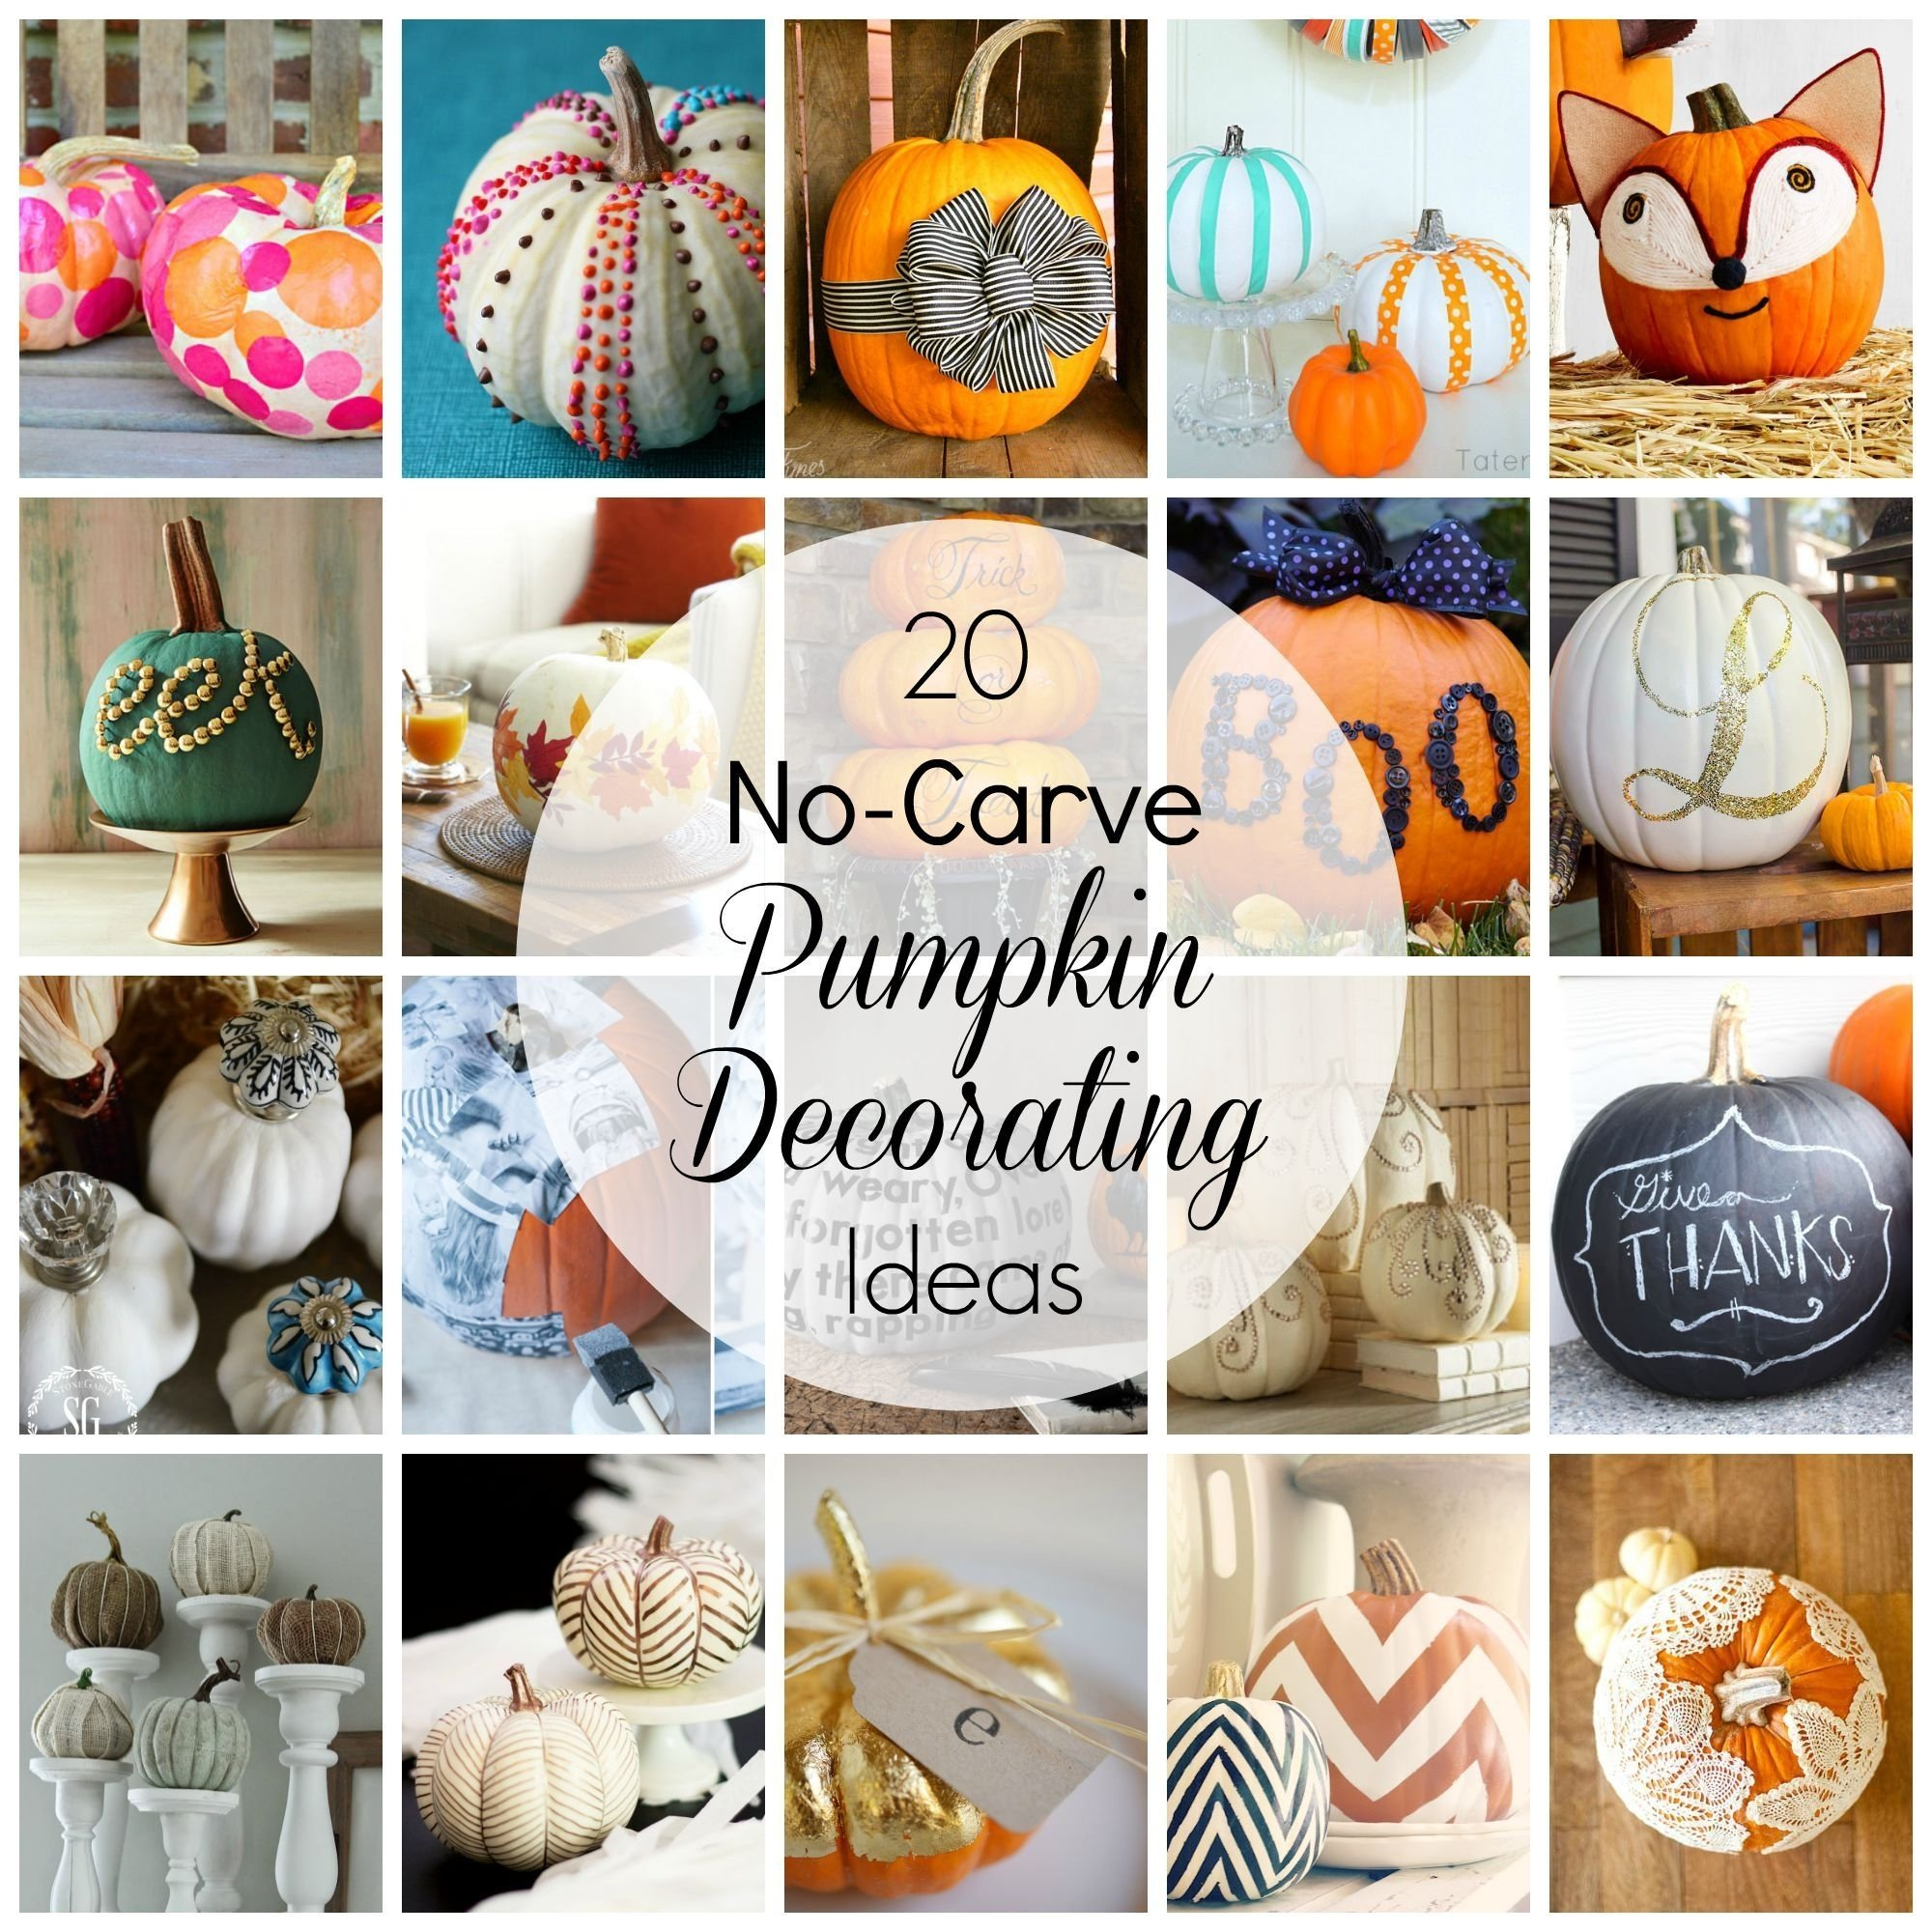 10 Famous No Carve Pumpkin Decorating Ideas no carve pumpkin decorating ideas pumpkin images holidays and